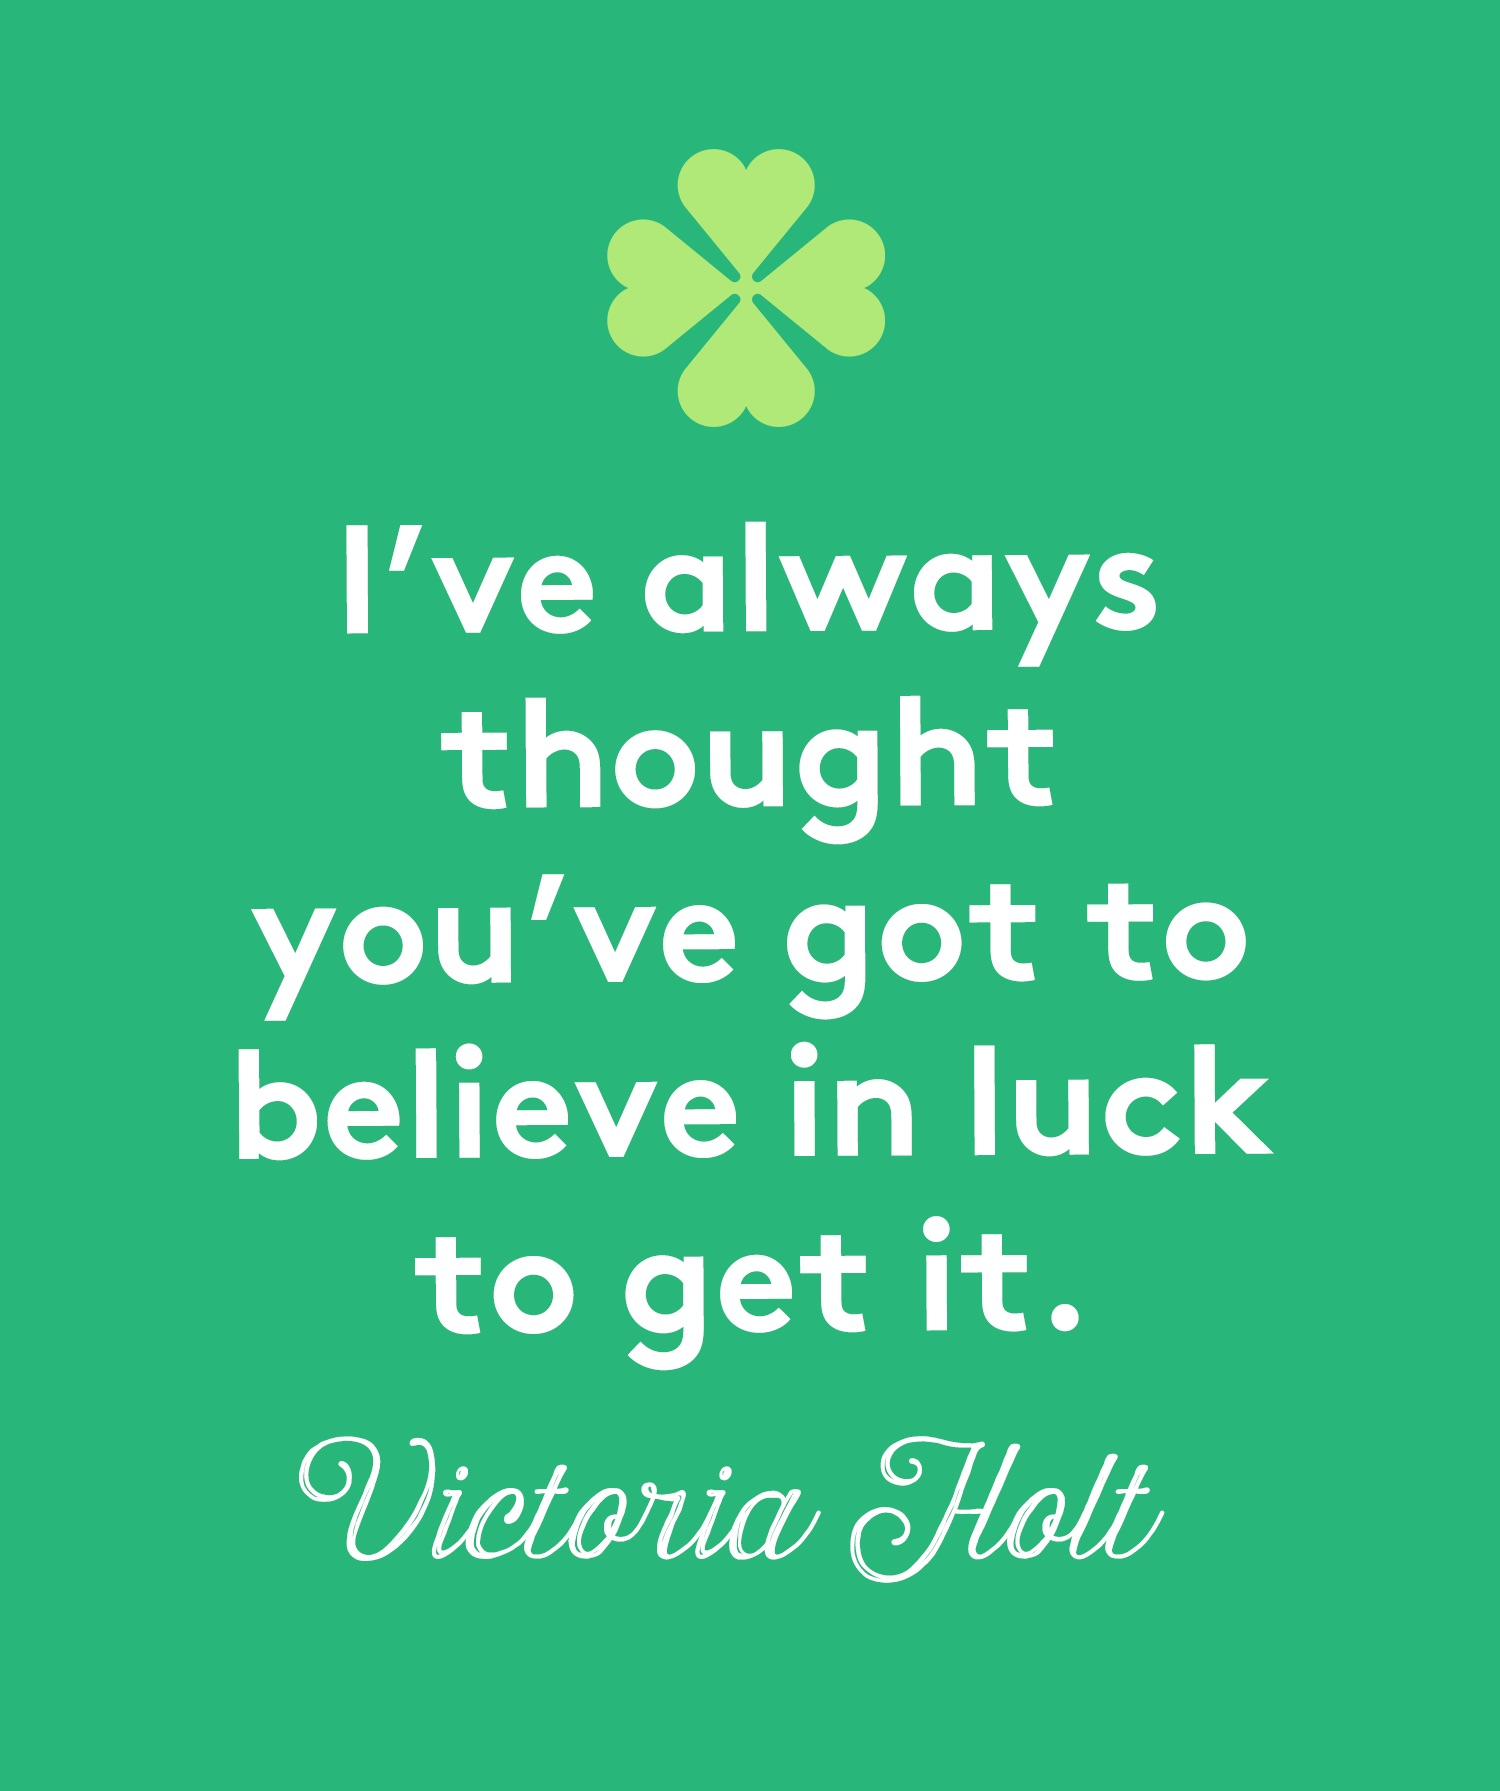 St. Patrick's Day Quotes, Holt